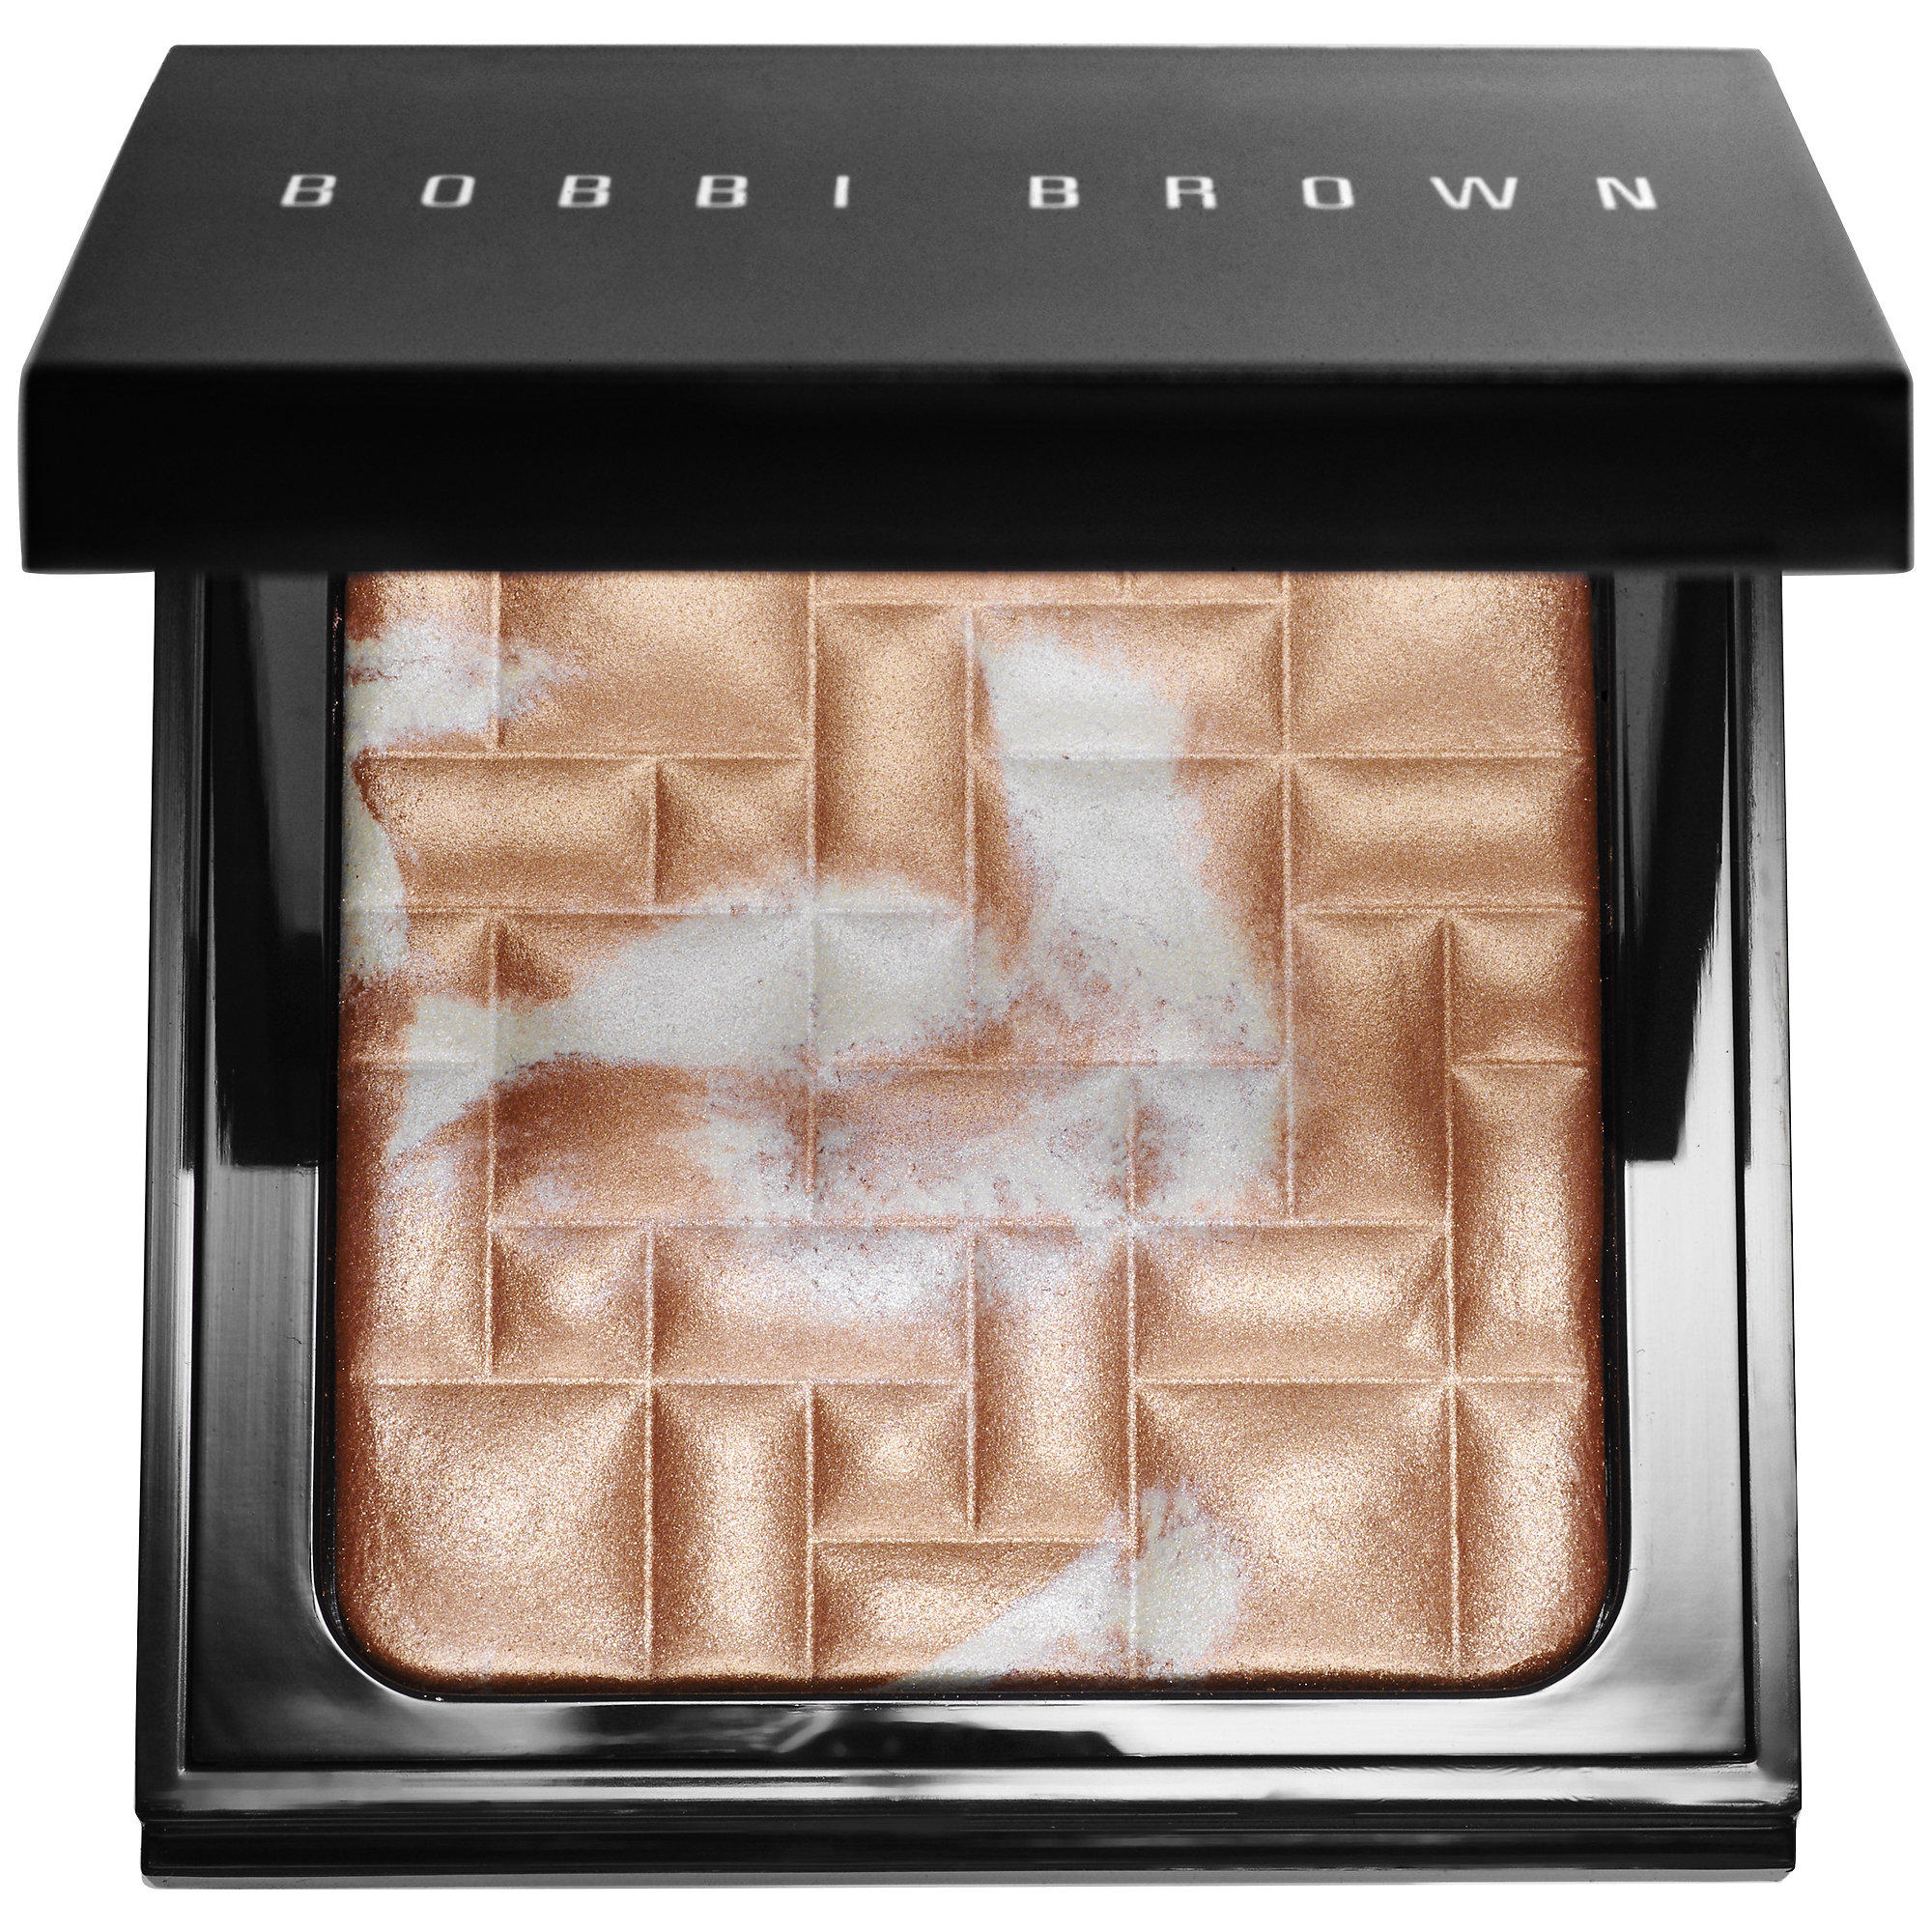 New Release Bobbi Brown relaunched Highlight Powder